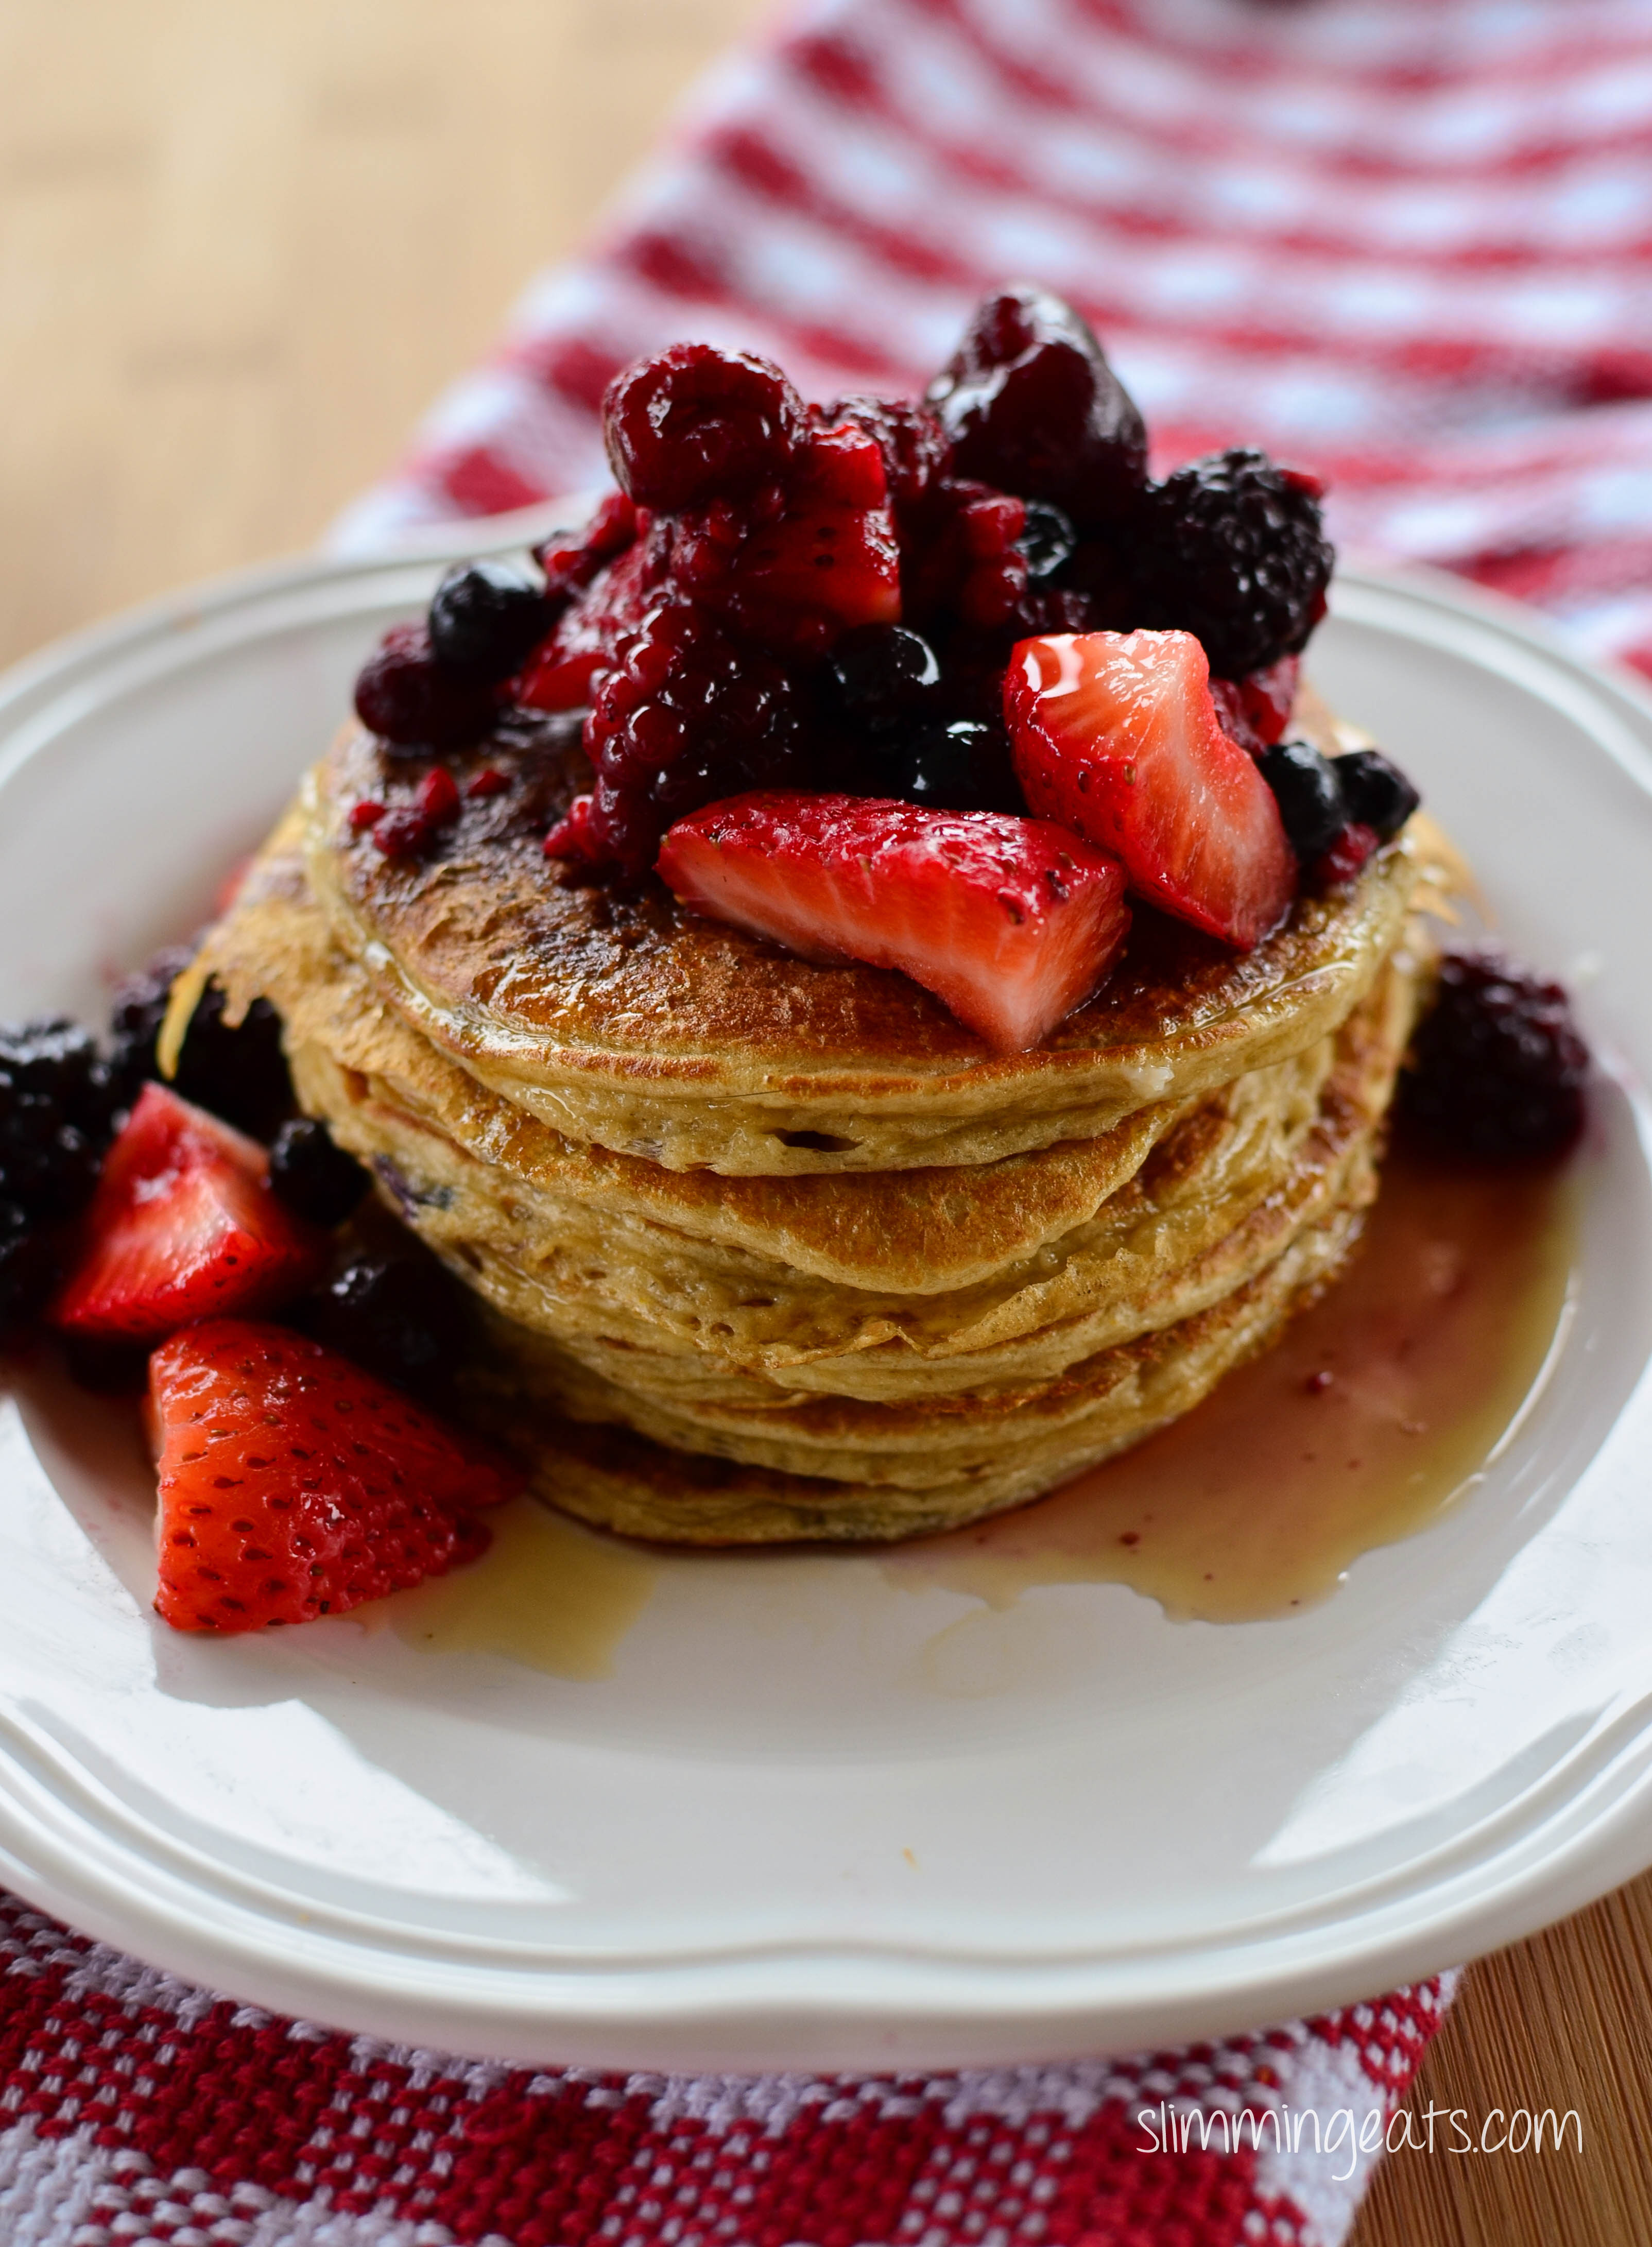 Slimming Eats American Style Pancakes - gluten free, dairy free, vegetarian, Slimming World and Weight Watchers friendly